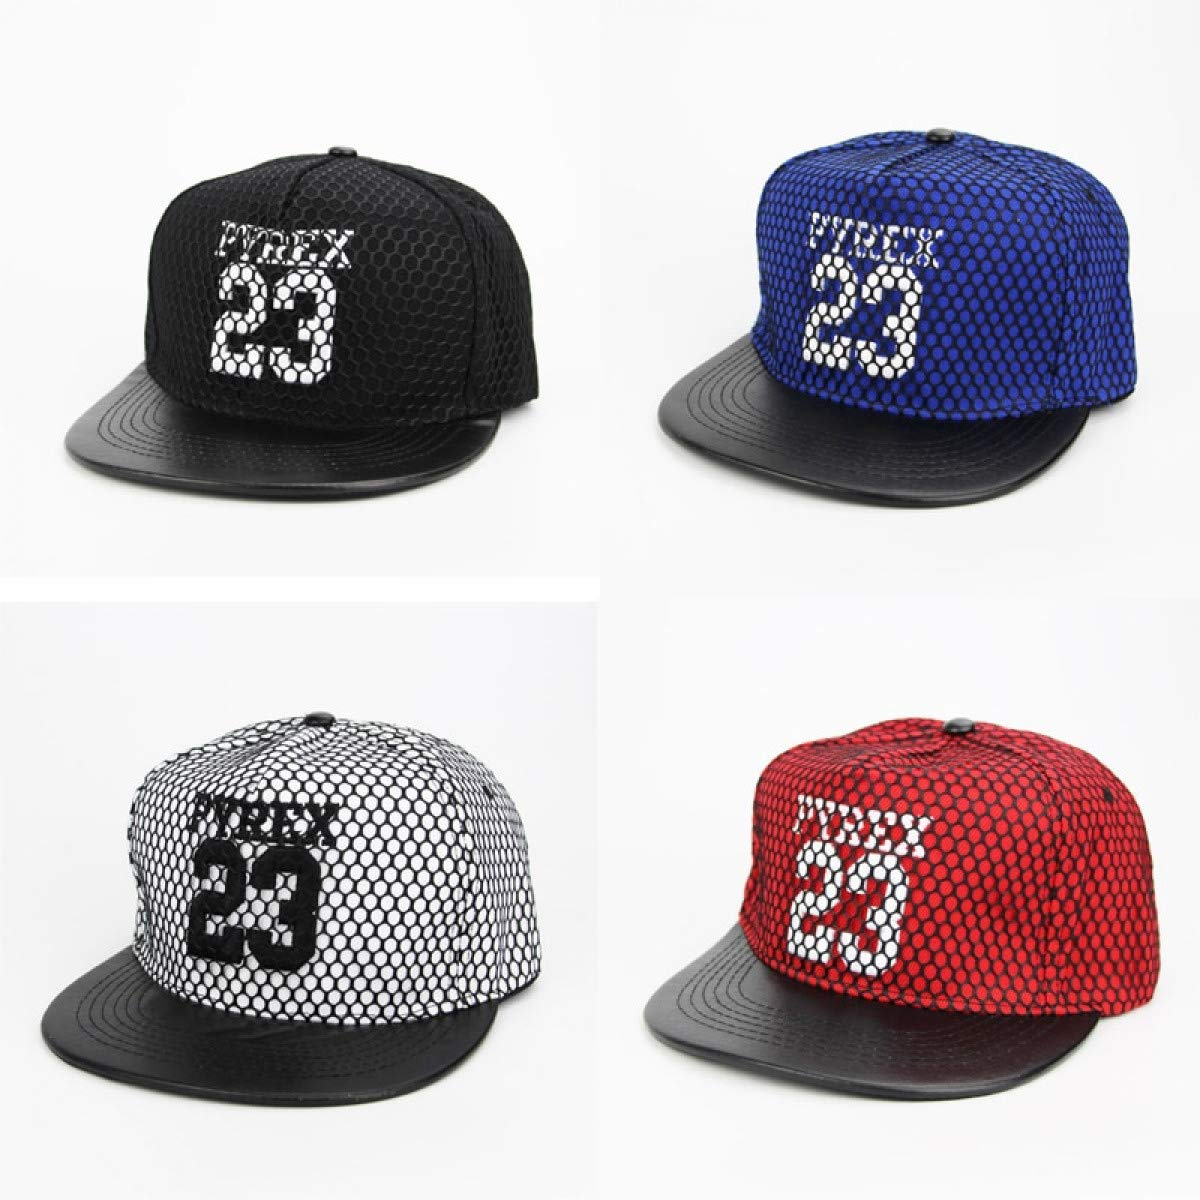 6704bb95f7a 2018 New Men Womens 23 Jordan Letters Solid Color Patch Baseball Cap Hip  Hop Caps Leather Sun Hat Snapback Hats Gift Embroidery White at Amazon  Men s ...